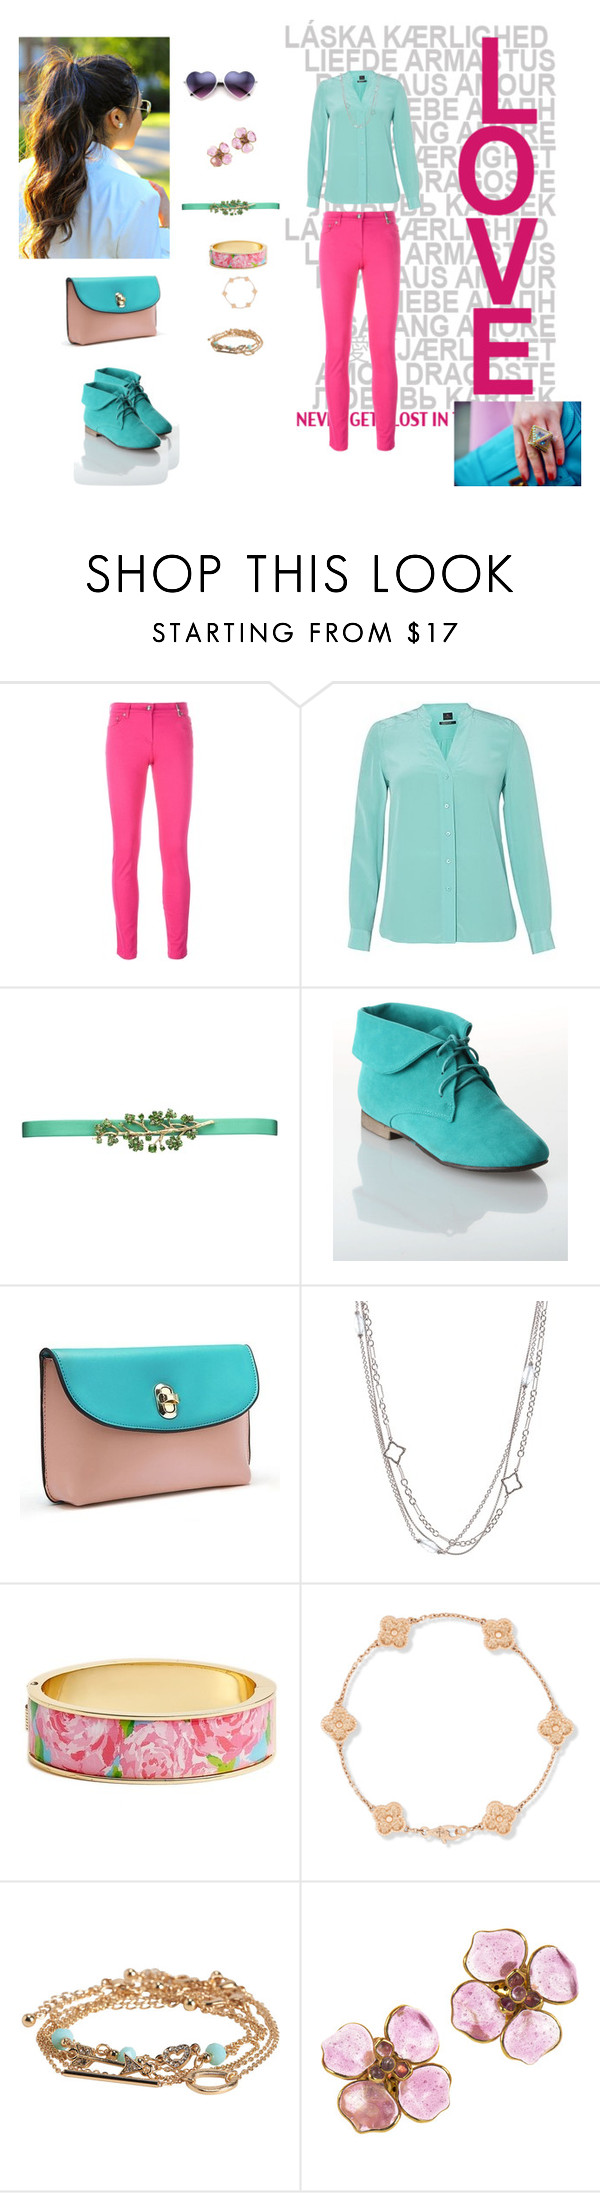 """""""Love <3"""" by korchie ❤ liked on Polyvore featuring Kenzo, Oscar de la Renta, Breckelle's, David Yurman, Lilly Pulitzer, Aéropostale and Chanel"""